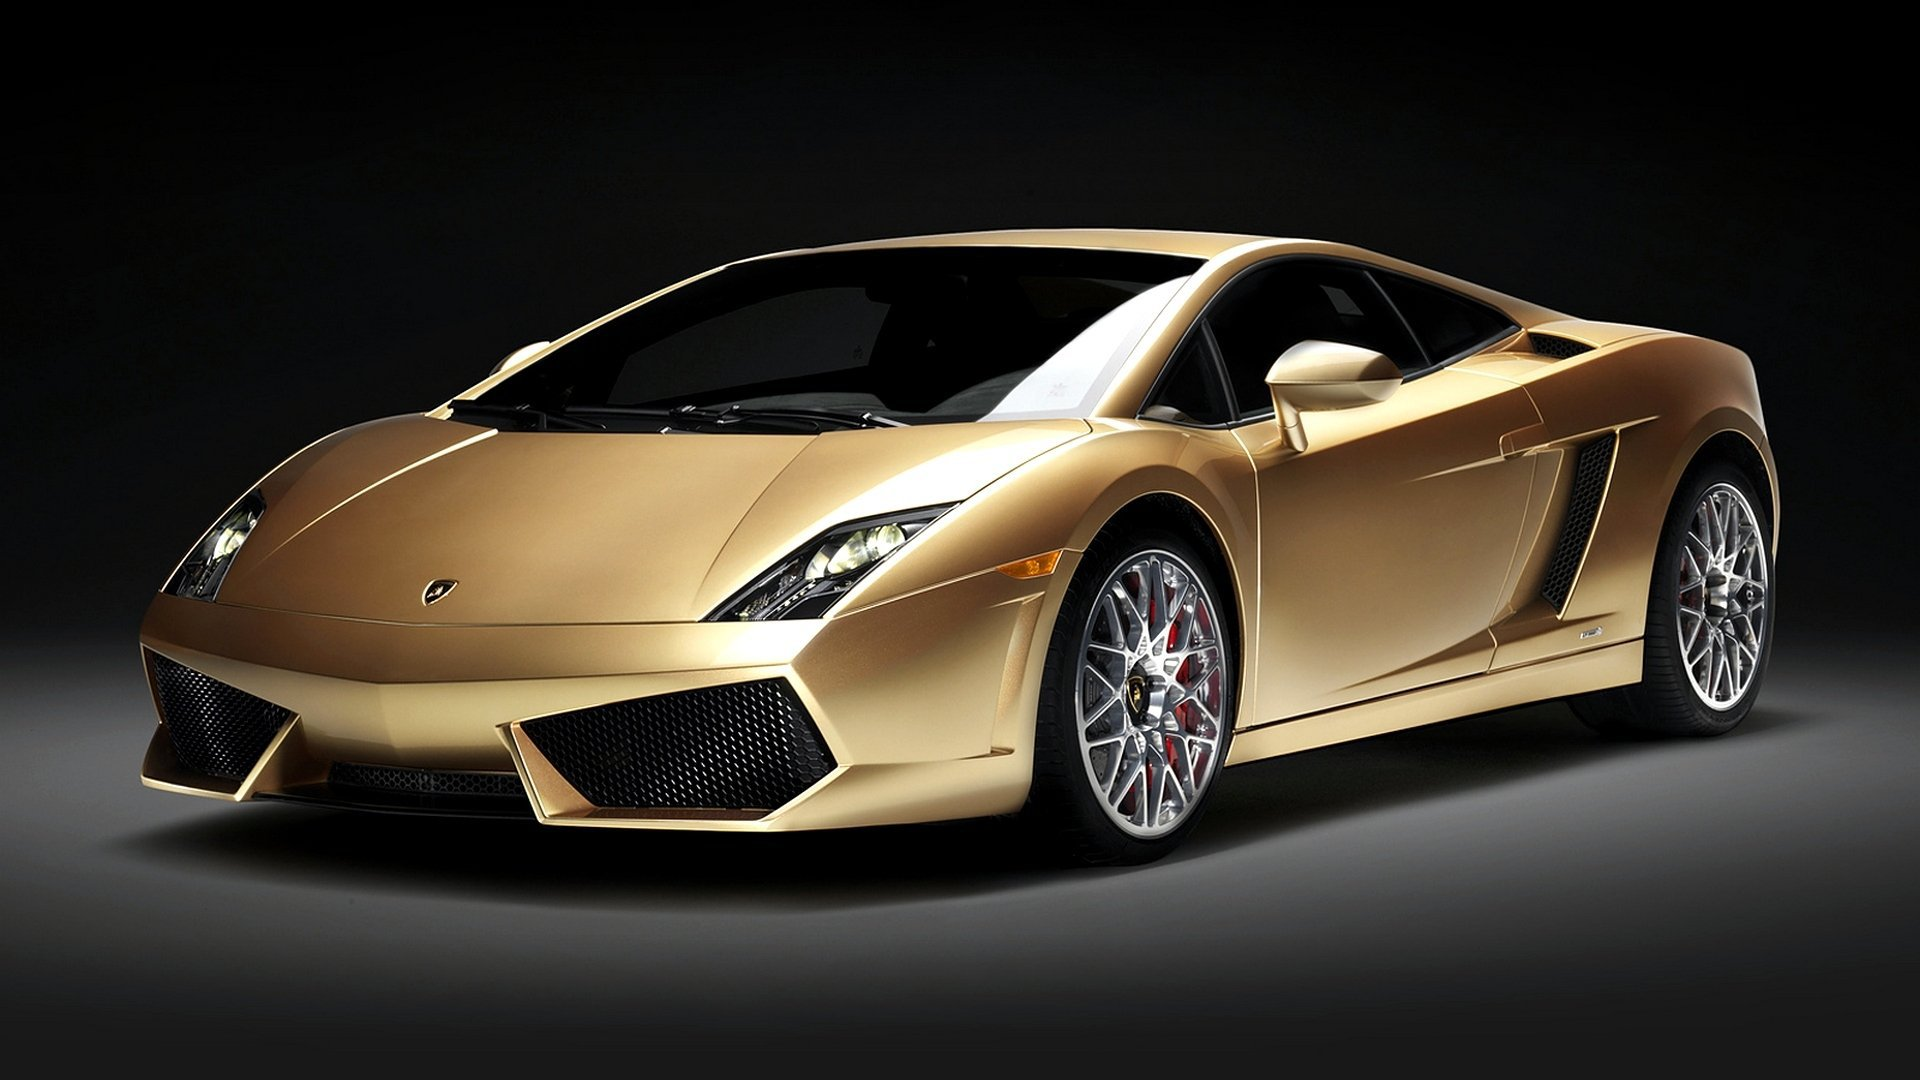 Lamborghini Gallardo Wallpapers Images Photos Pictures Backgrounds